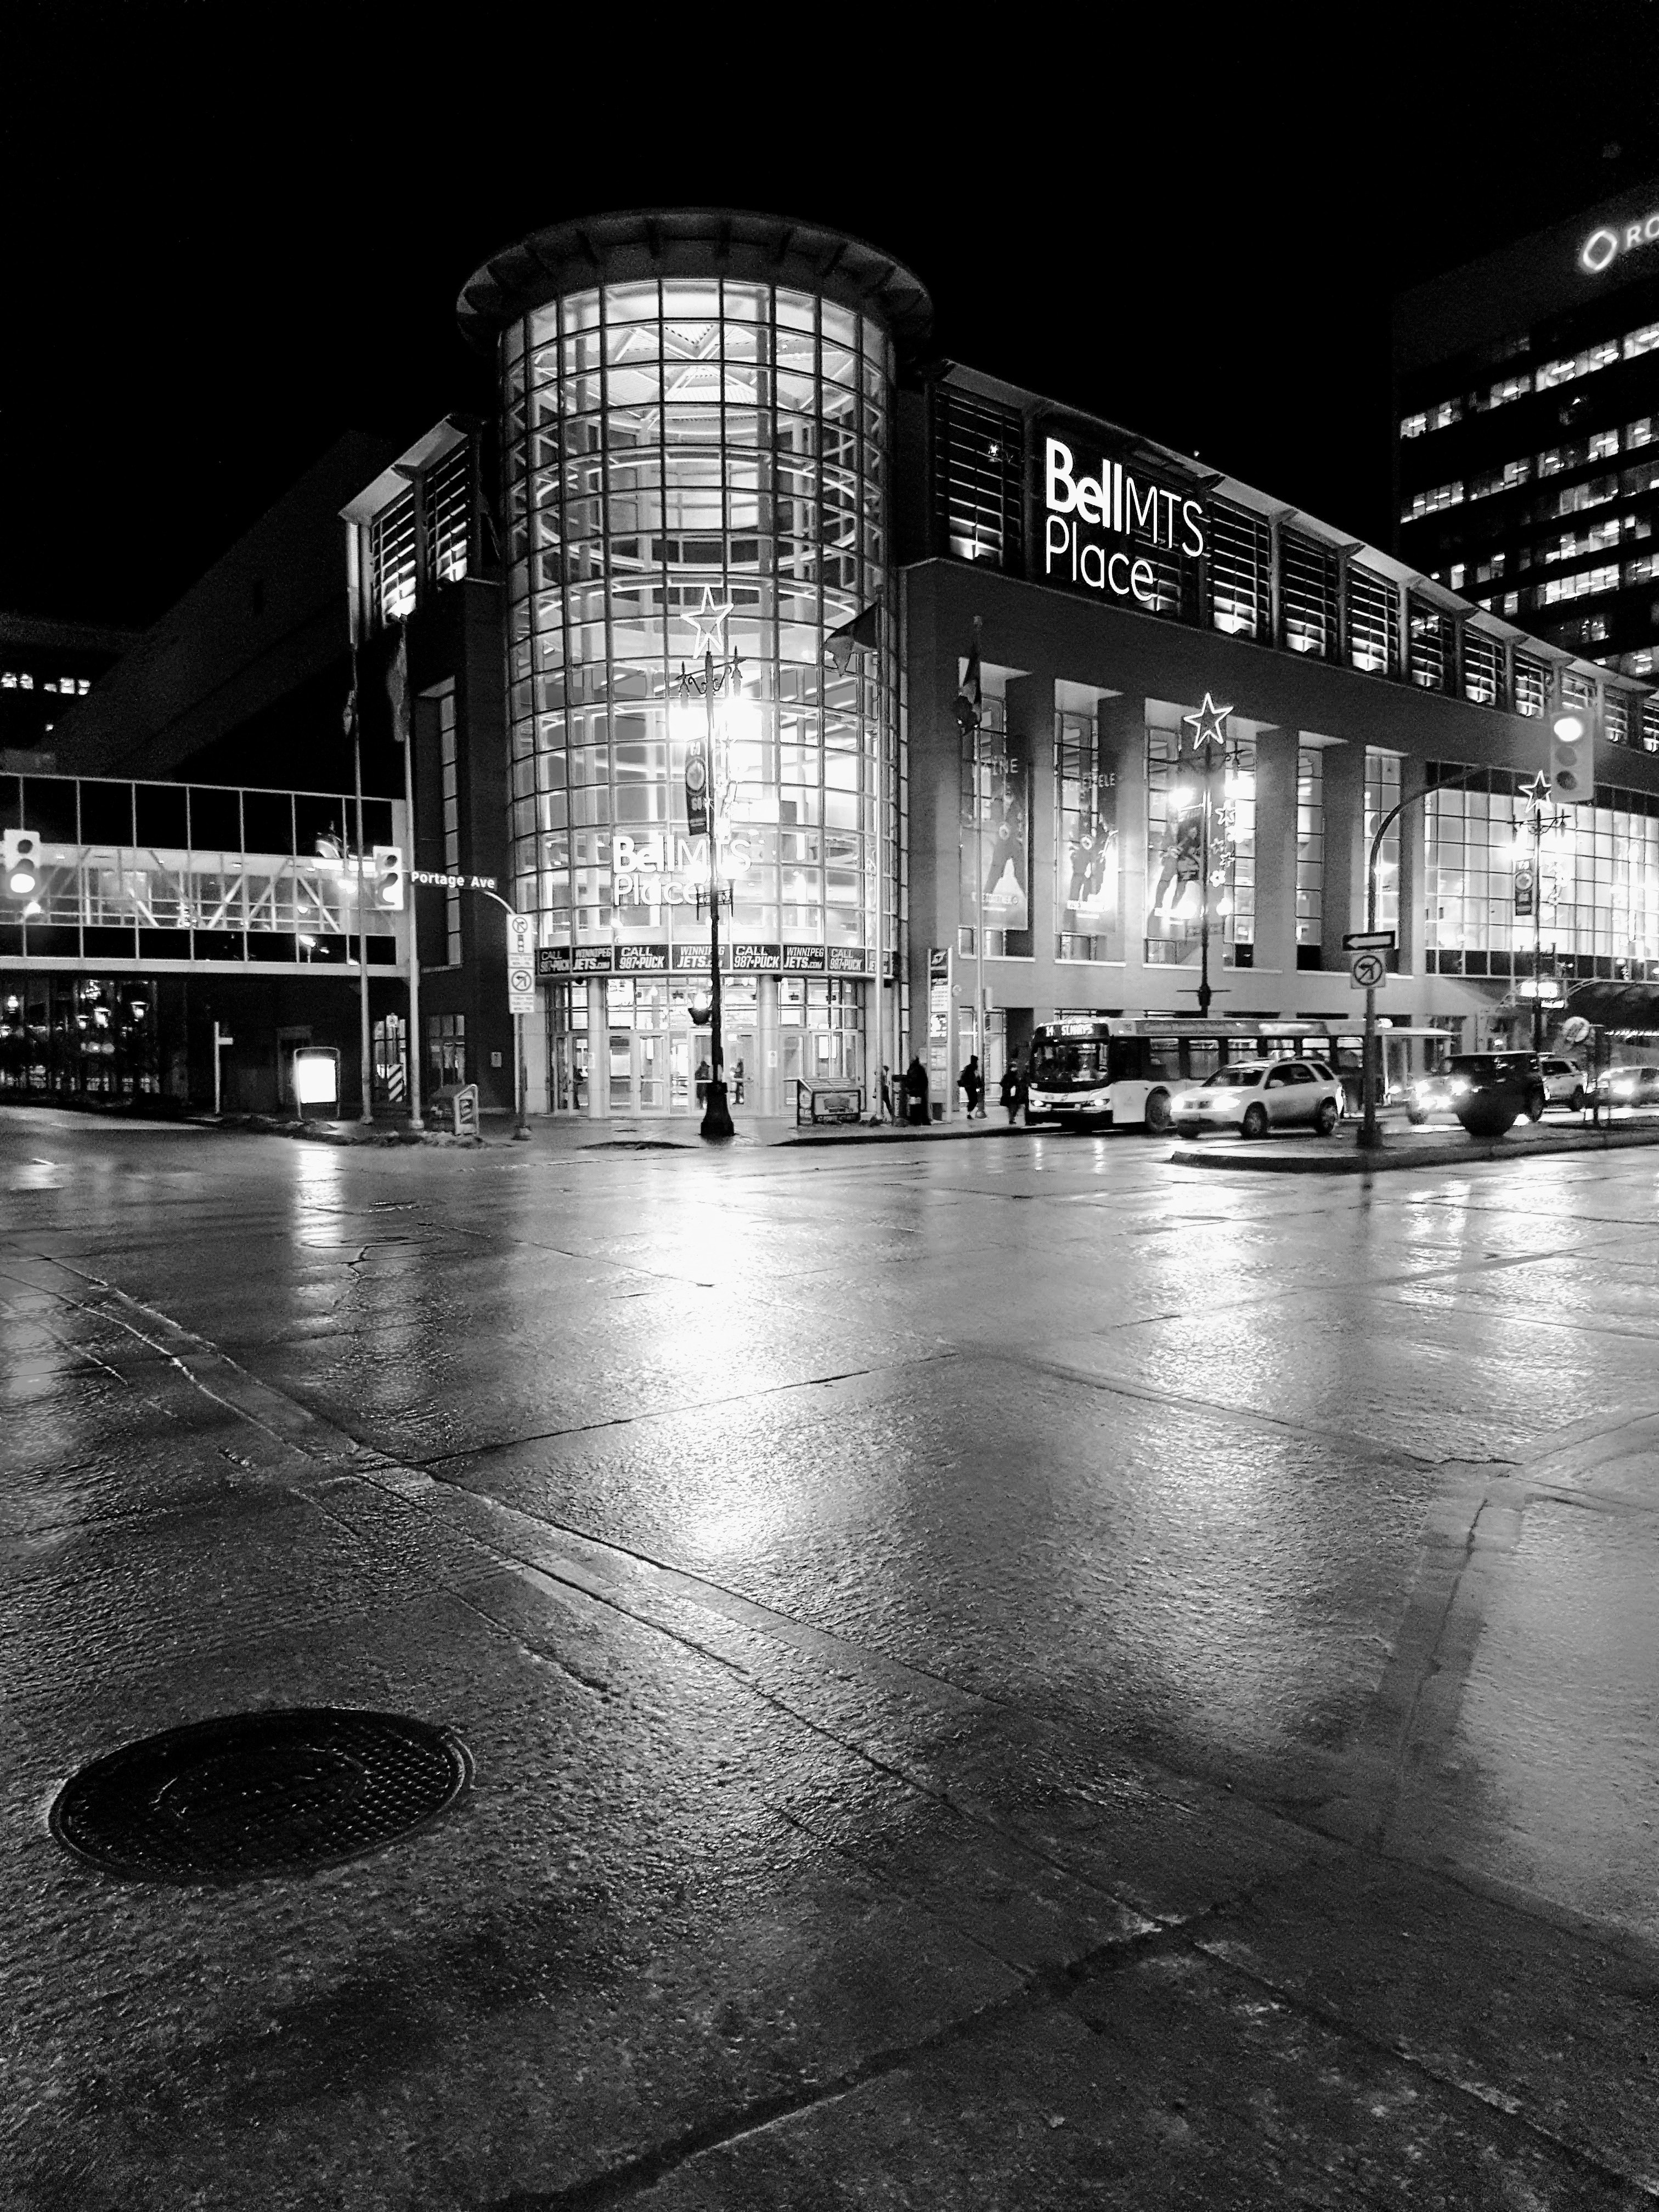 Black and White Photo of the Building, Architecture, Pavement, Urban, Travel, HQ Photo